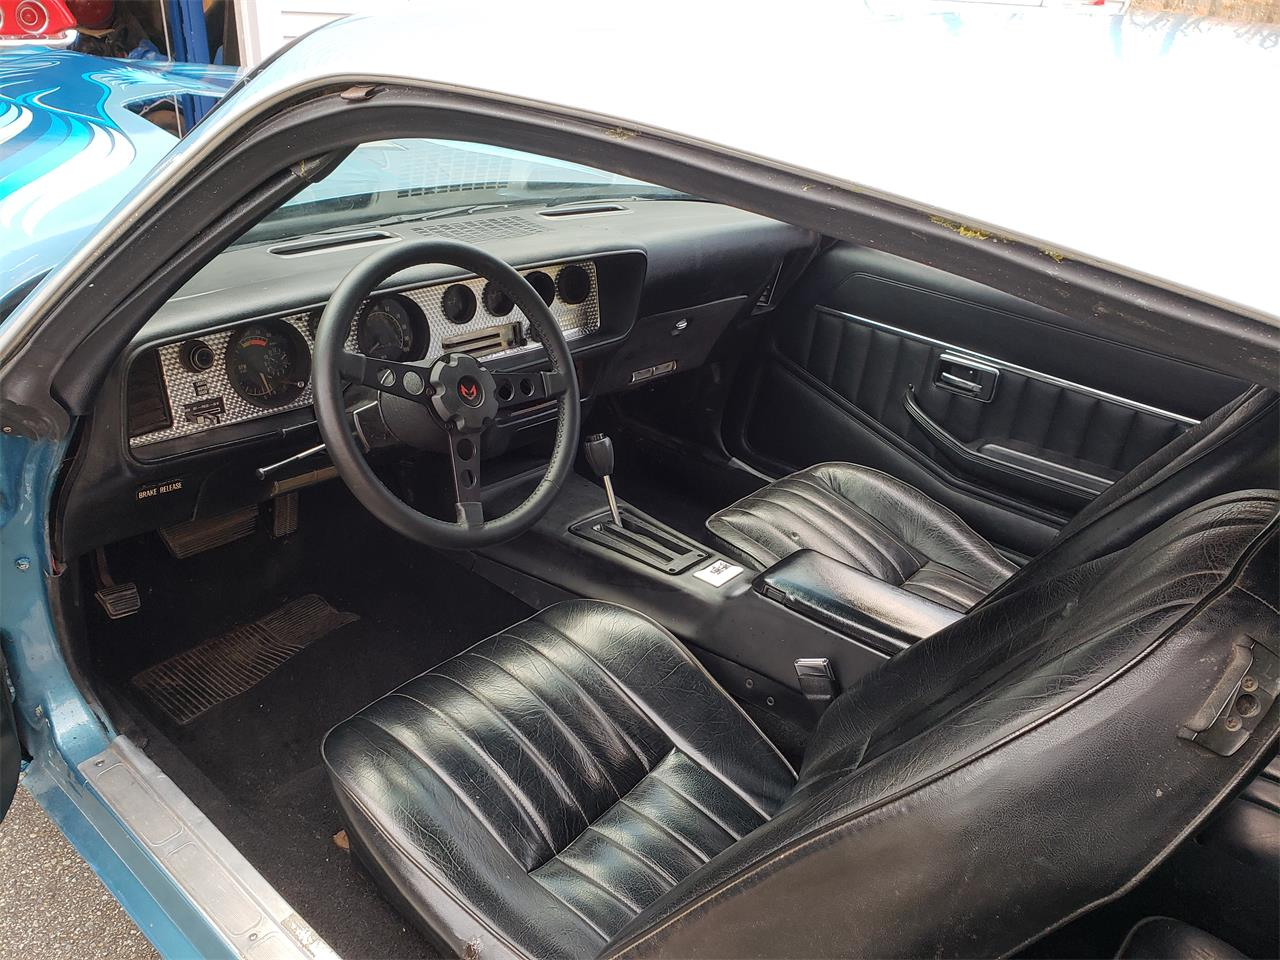 1979 Pontiac Firebird Trans Am for sale in Baltic, CT – photo 7